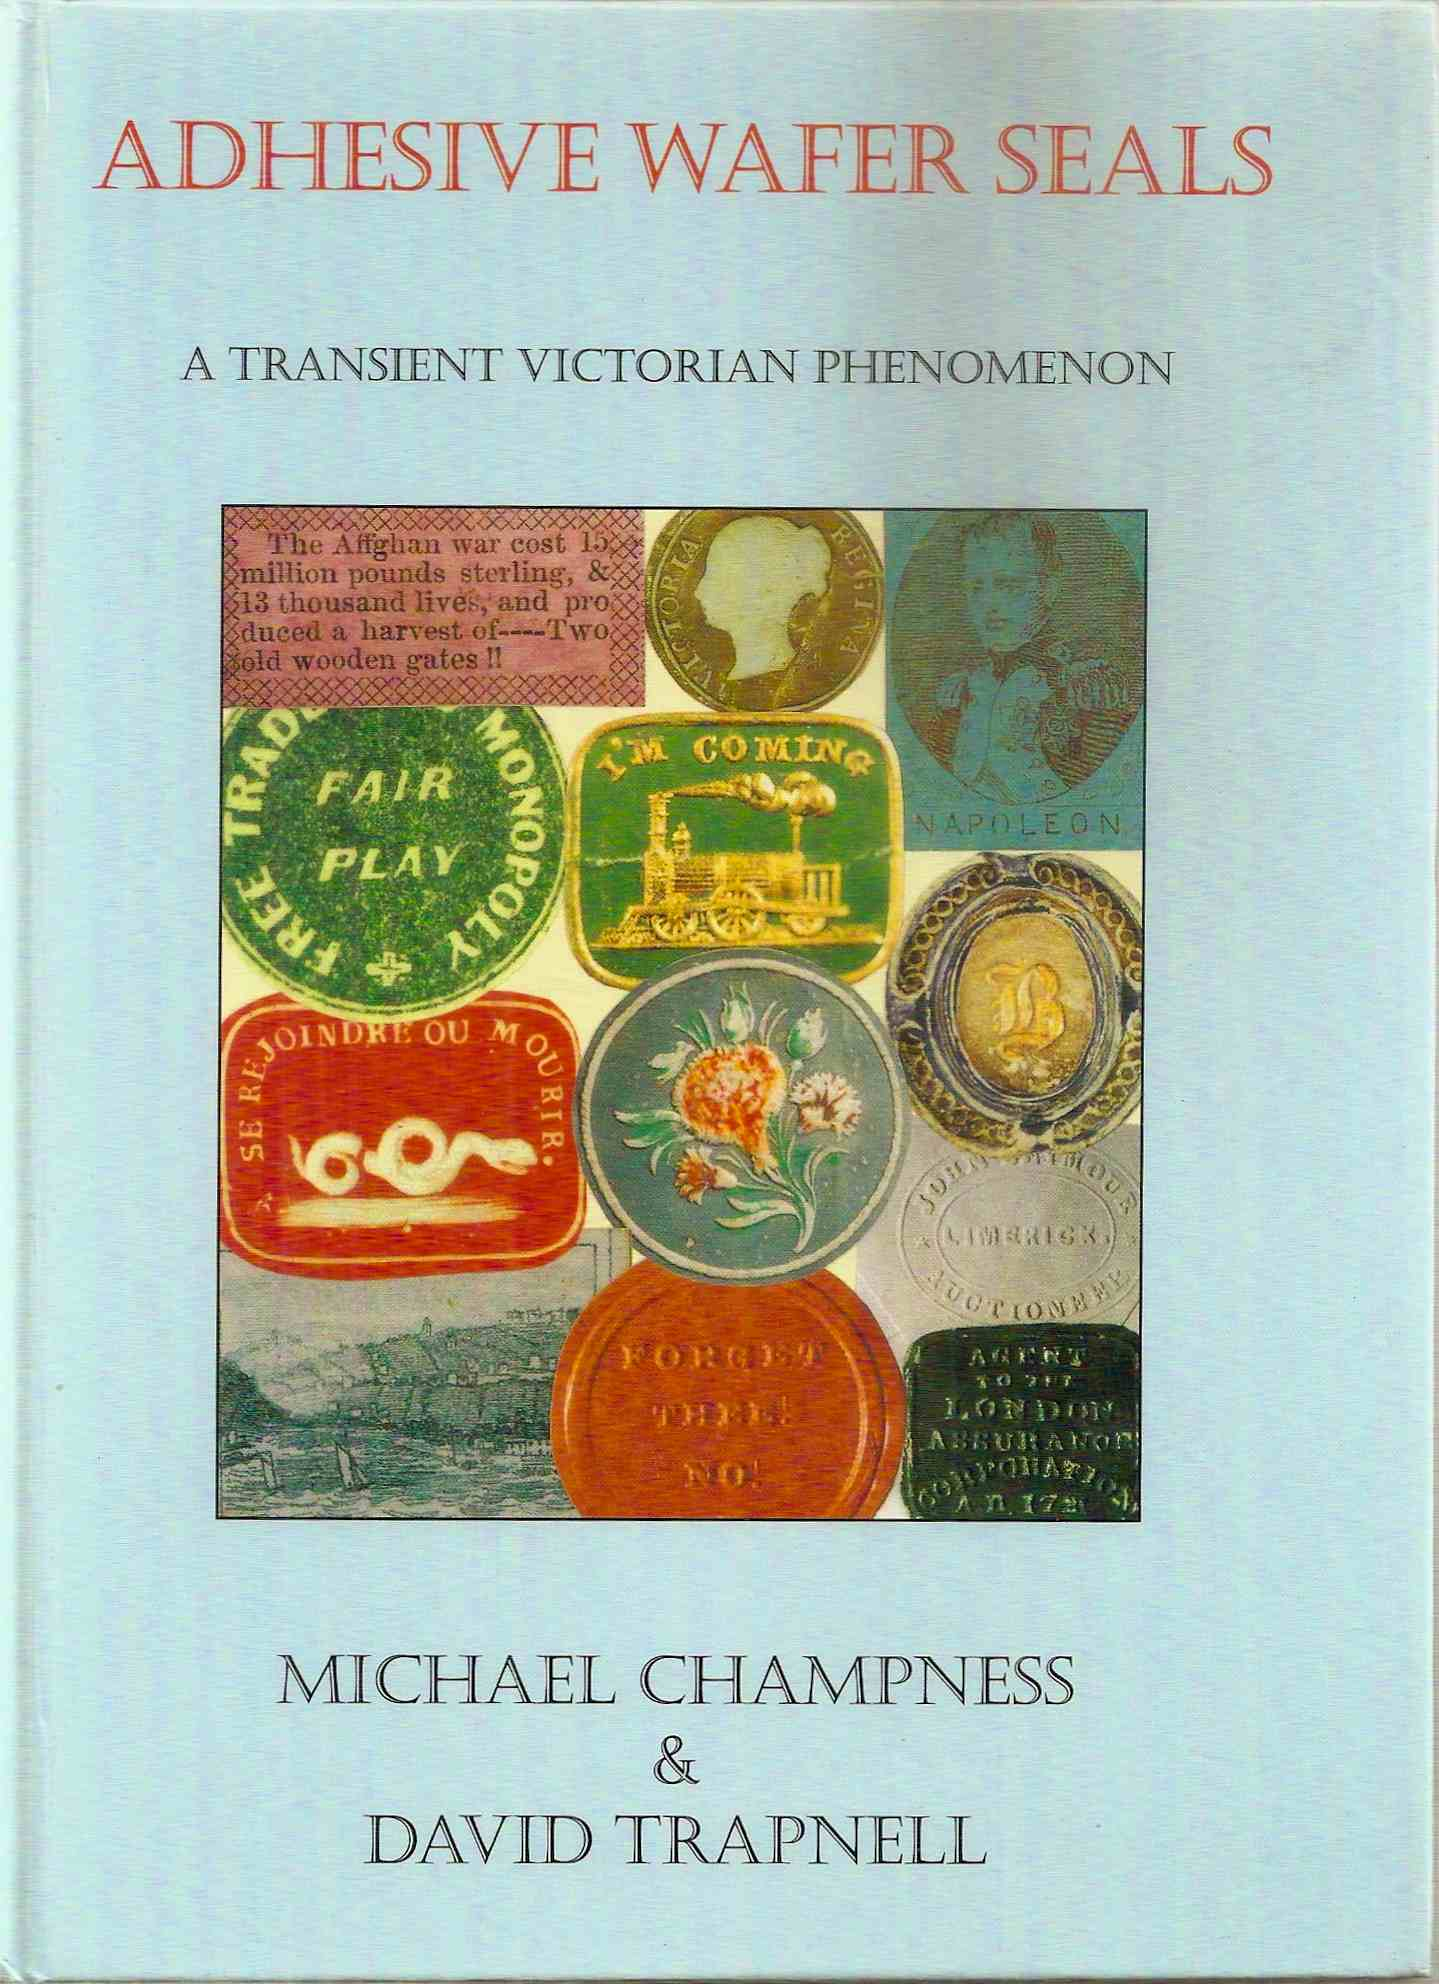 ADHESIVE WAFER SEALS, Champness & Trapnell, 1996 (hardback)